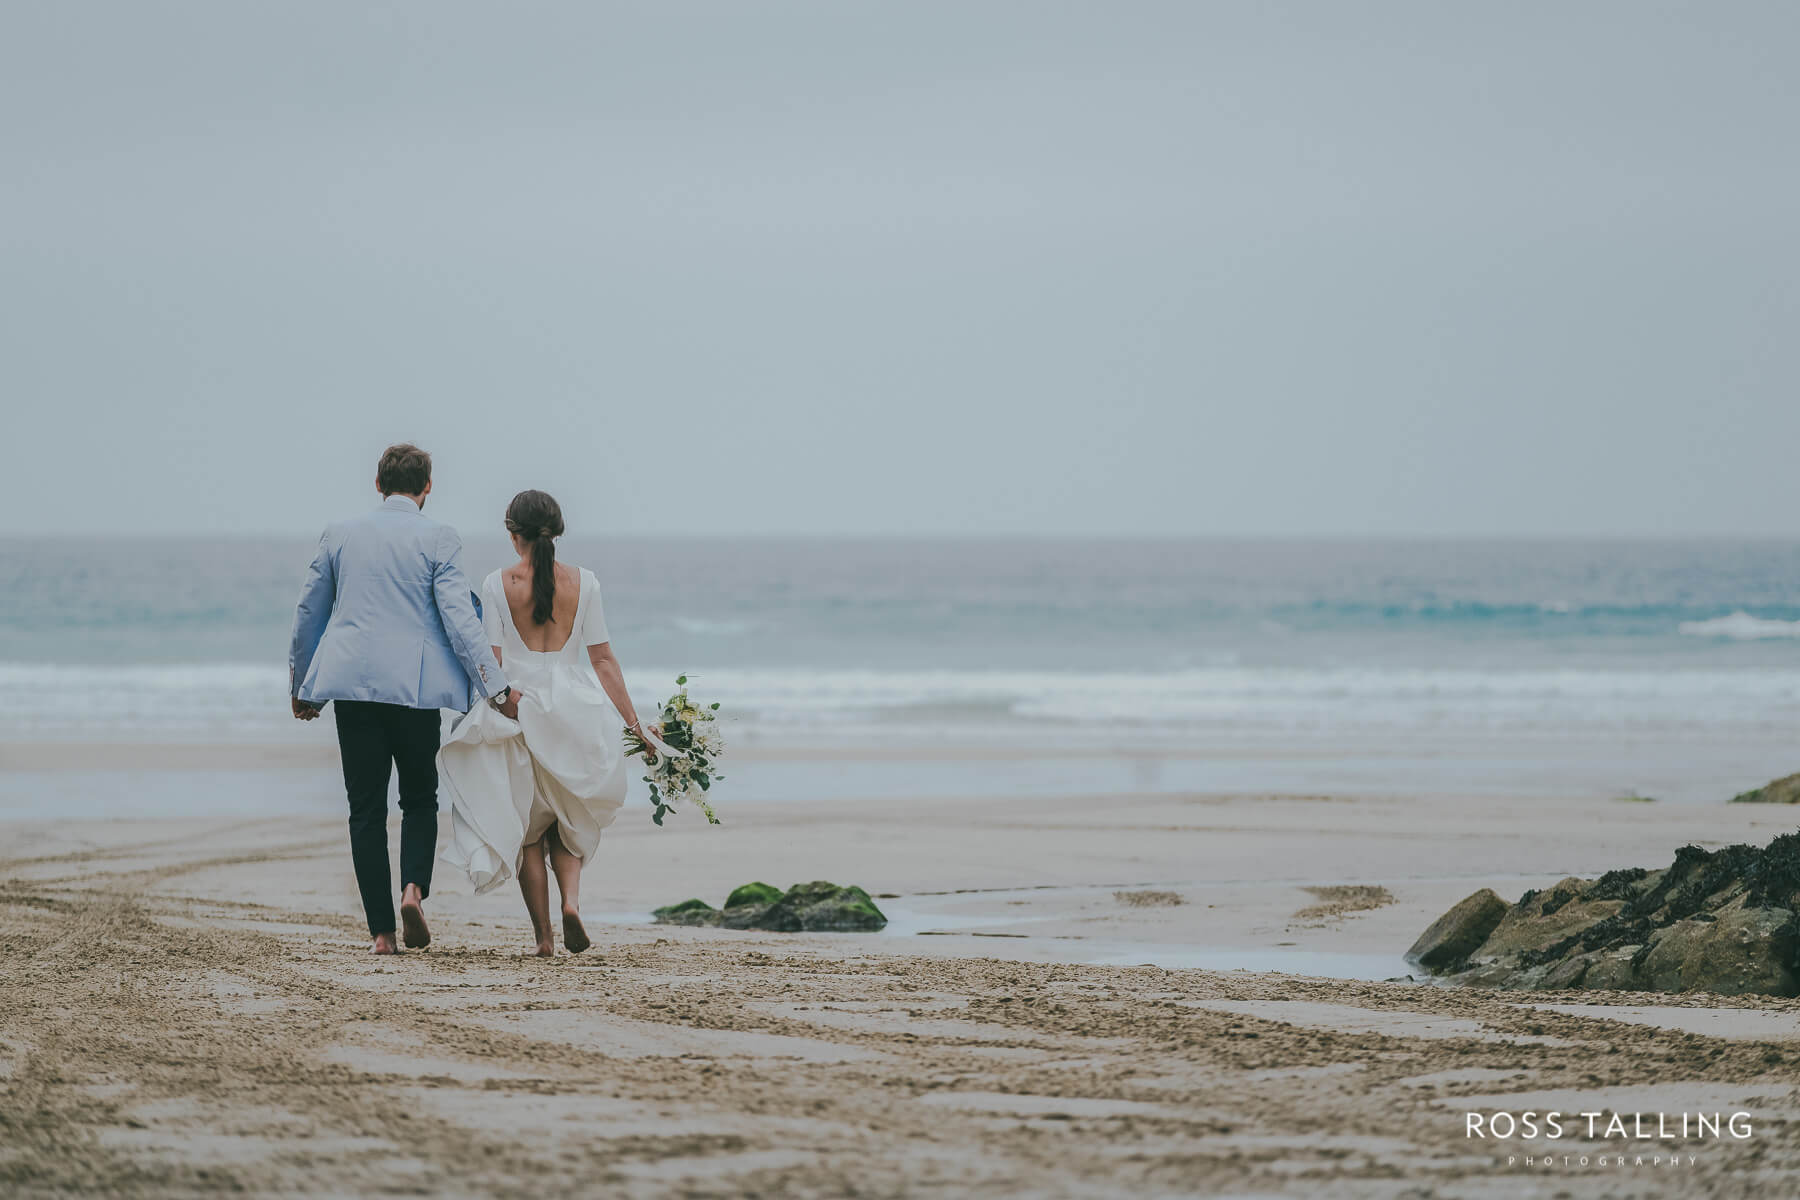 Beach wedding photography in Cornwall by Ross Talling